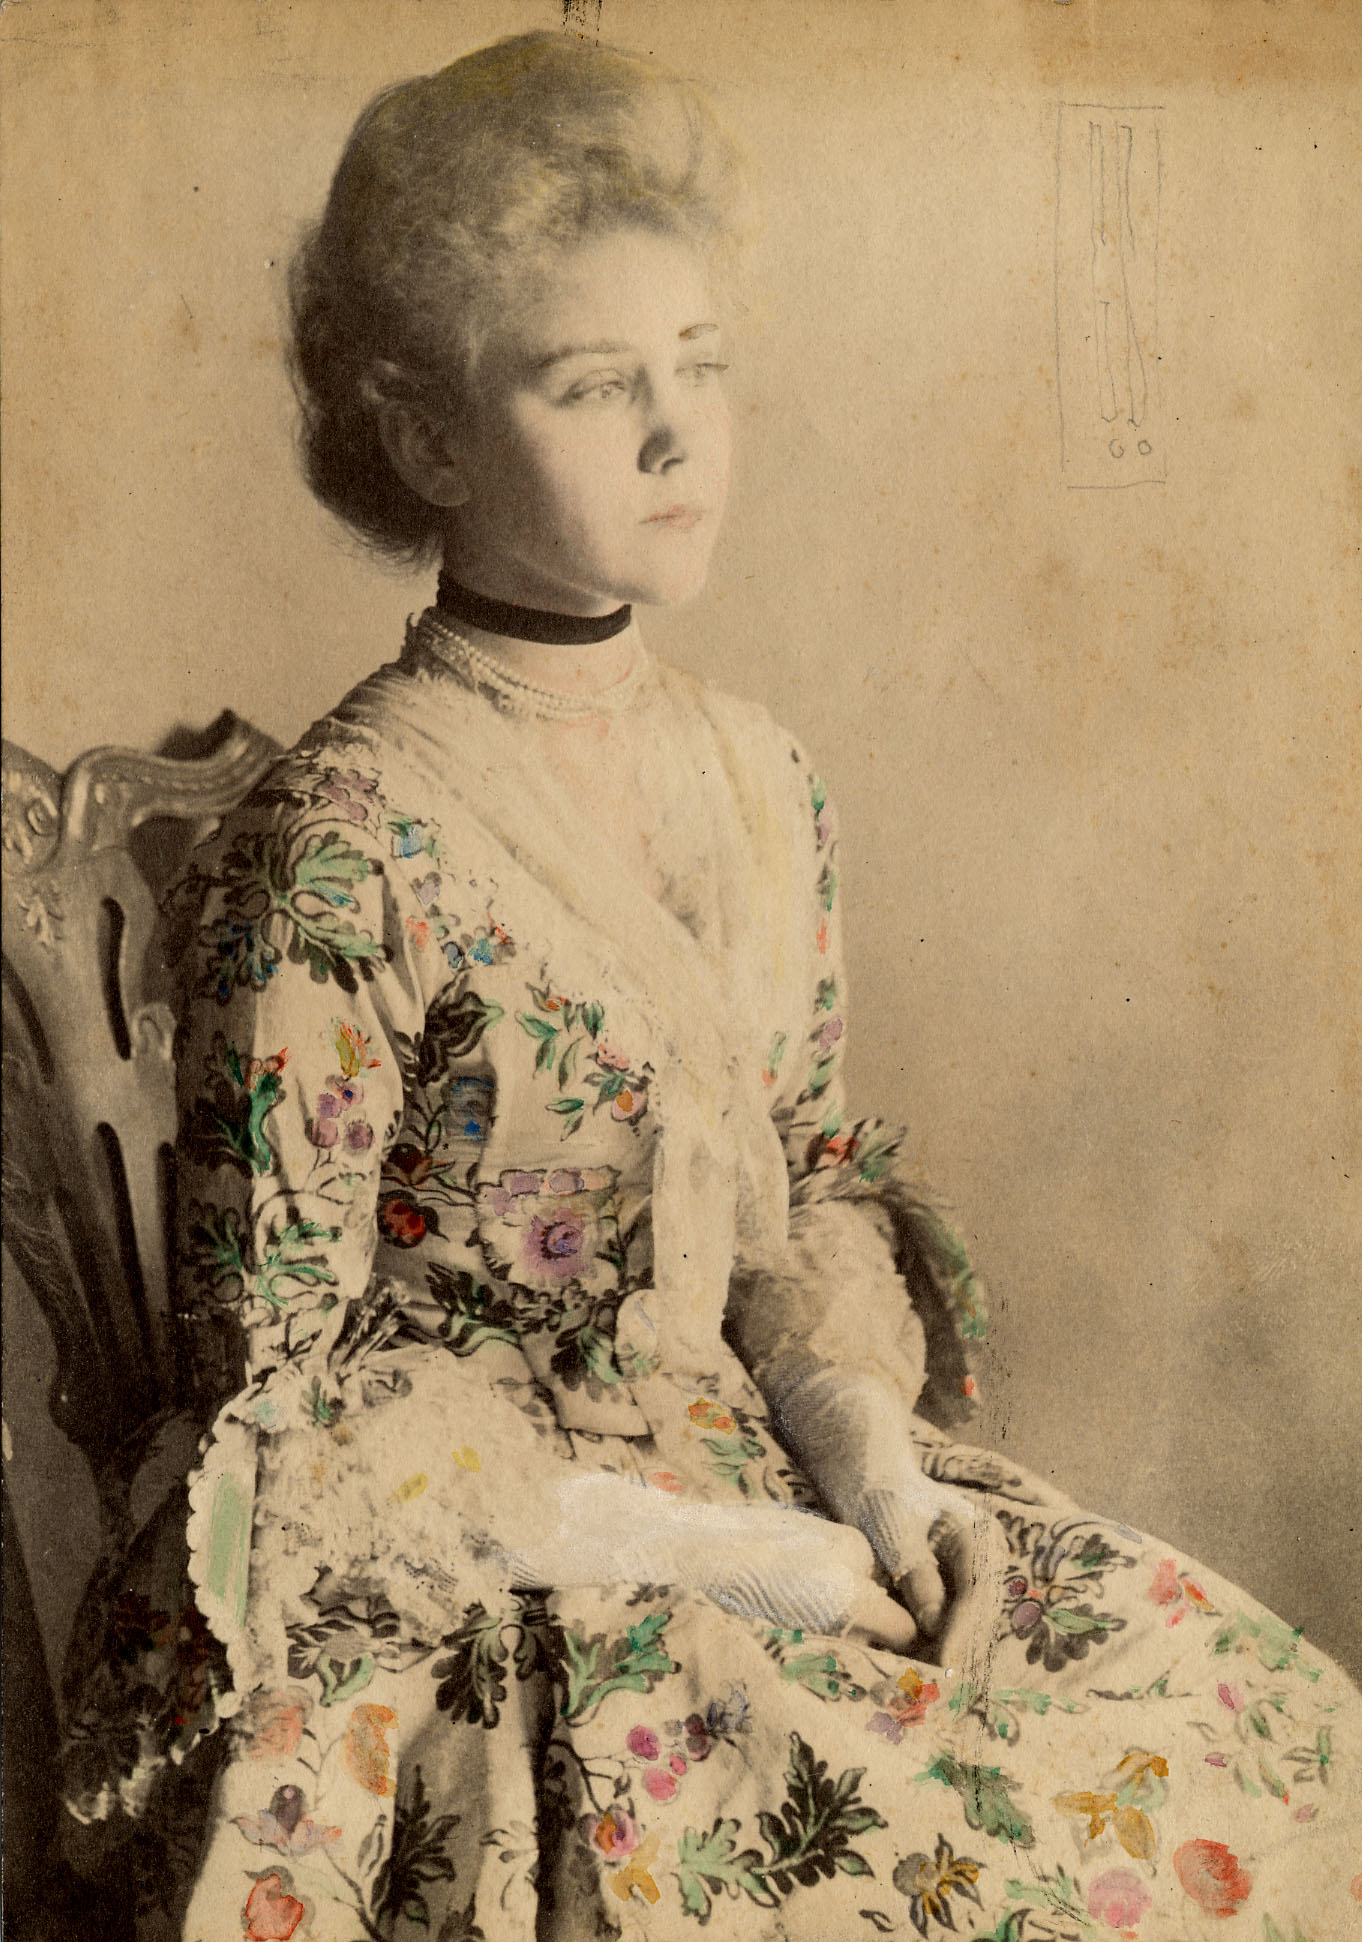 Catharine Huntington (1887-1987) (pictured here)also wore Elizabeth Pitkin's wedding dress. This black and white photograph has been hand-colored to indicate how it would have looked when Catharine wore it around the start of the 20th century.